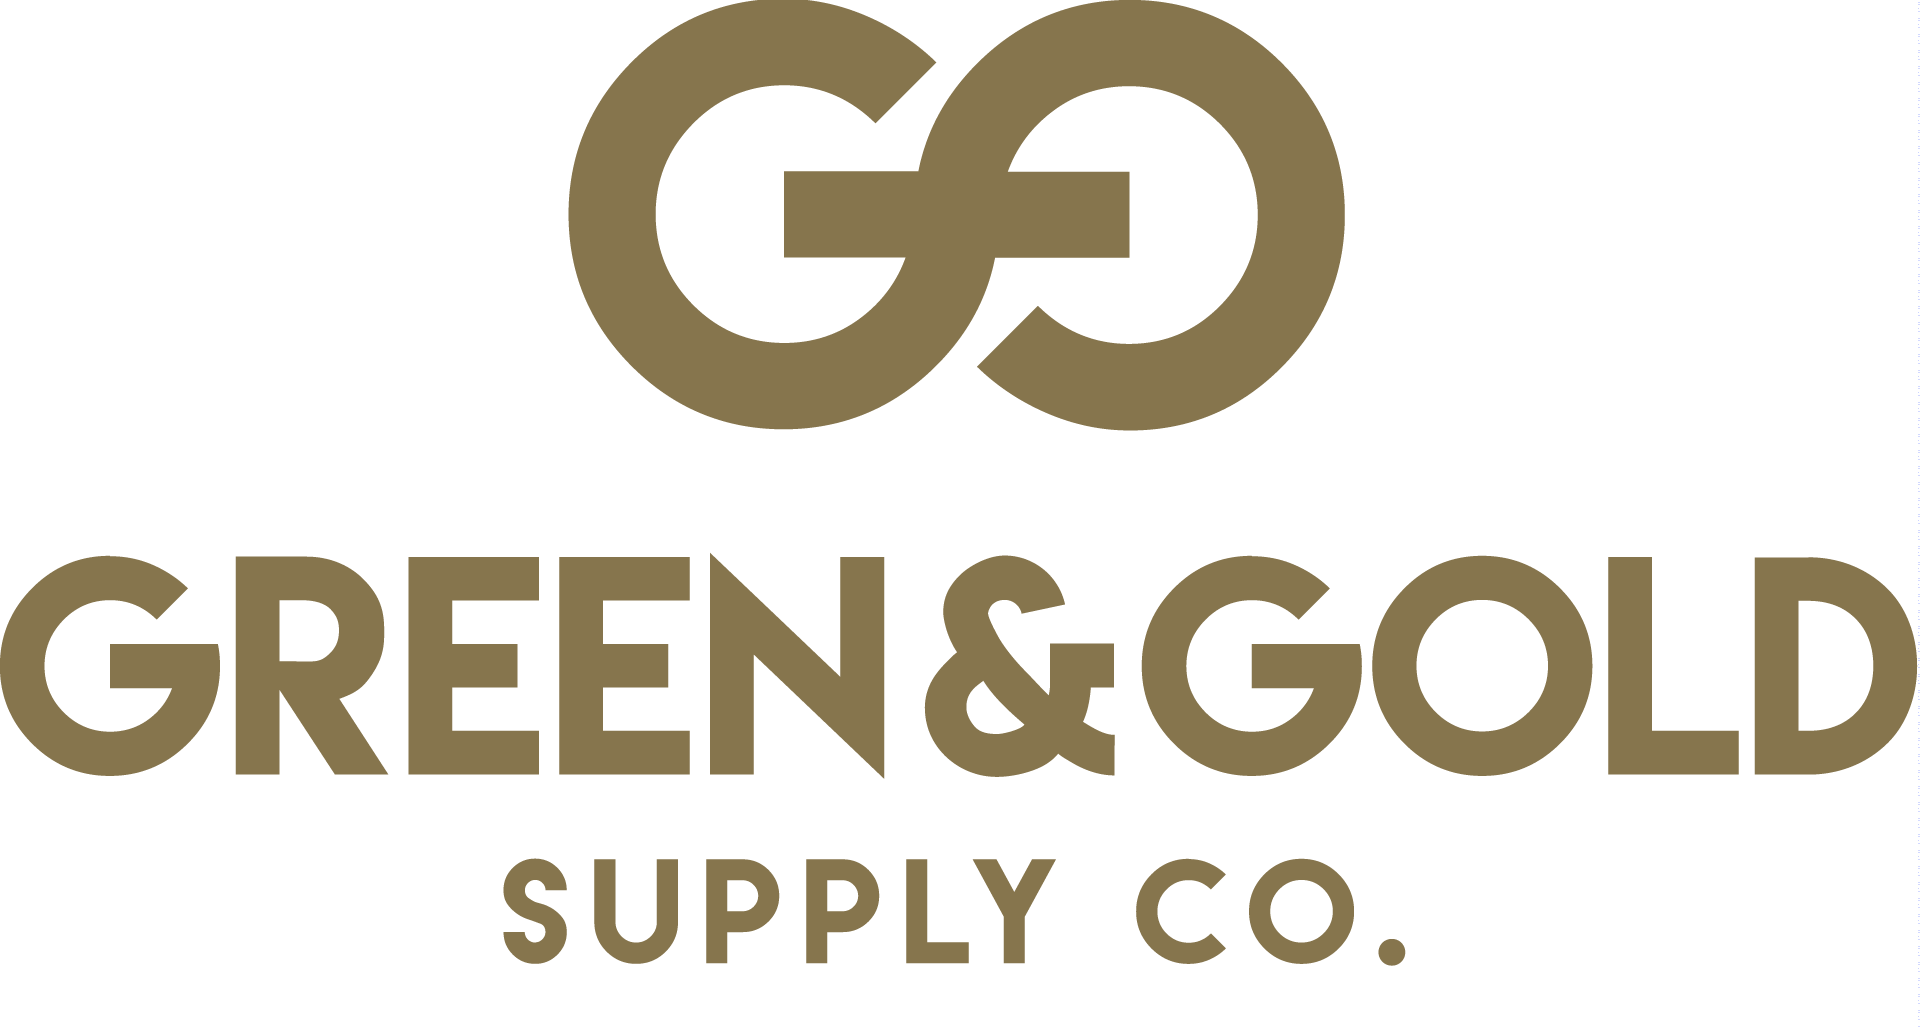 Green & Gold Supply Co.